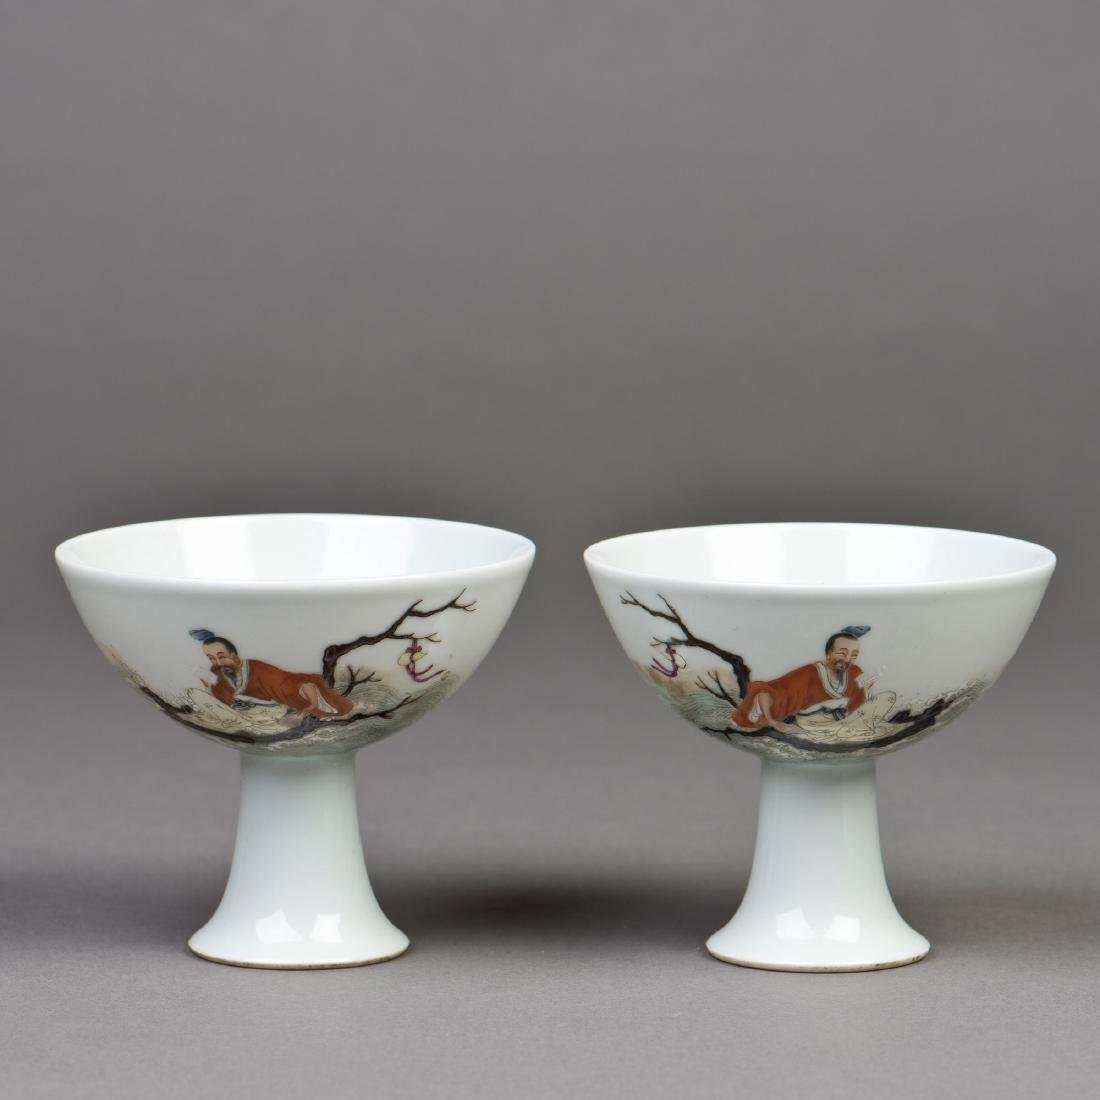 A PAIR OF FAMILLE ROSE PORCELAIN GOBLETS